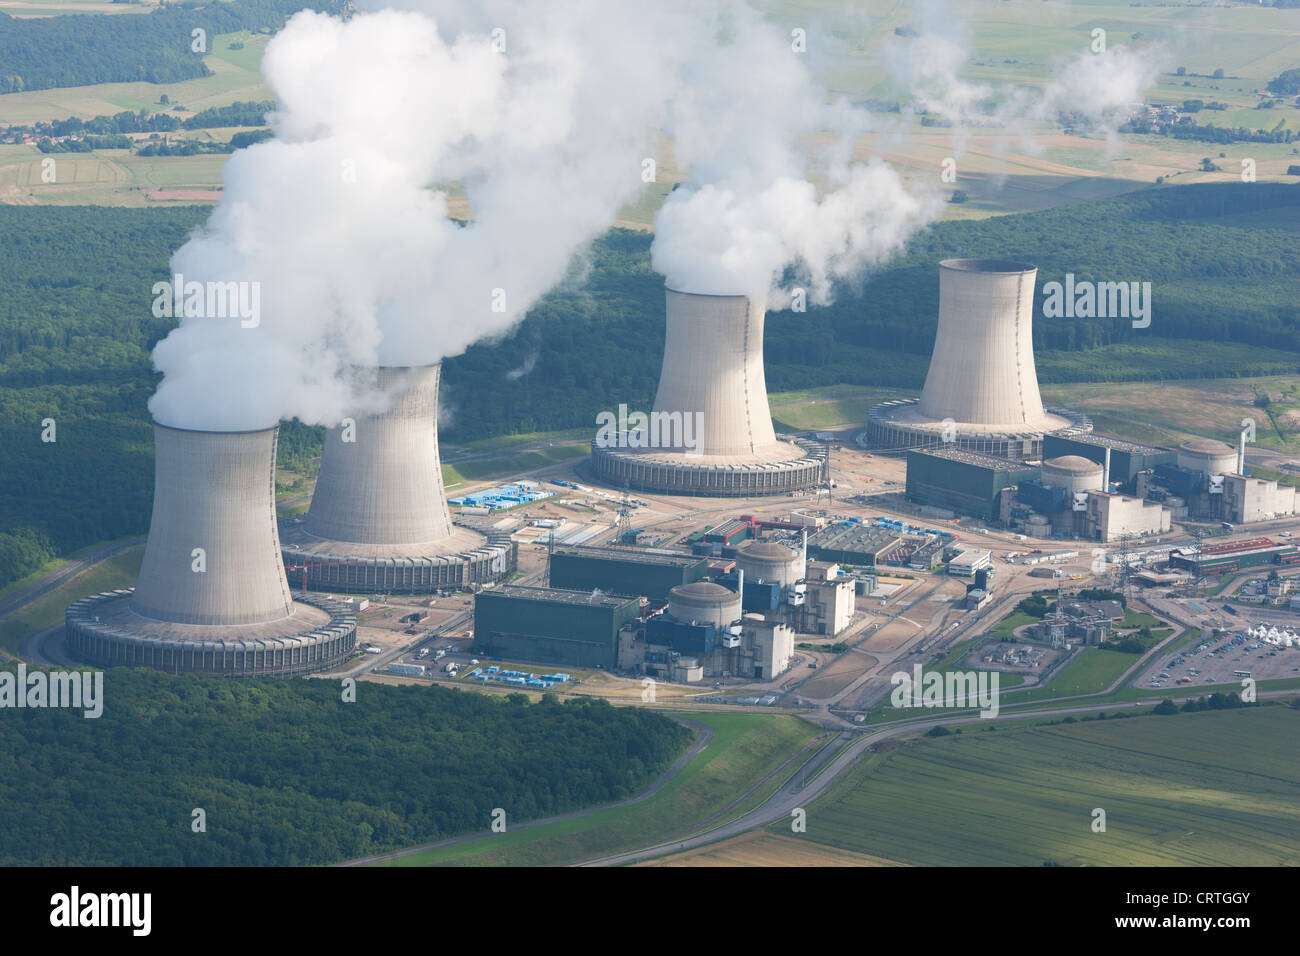 CATTENOM NUCLEAR POWER PLANT (aerial view). Near Thionville, Lorraine, France. - Stock Image